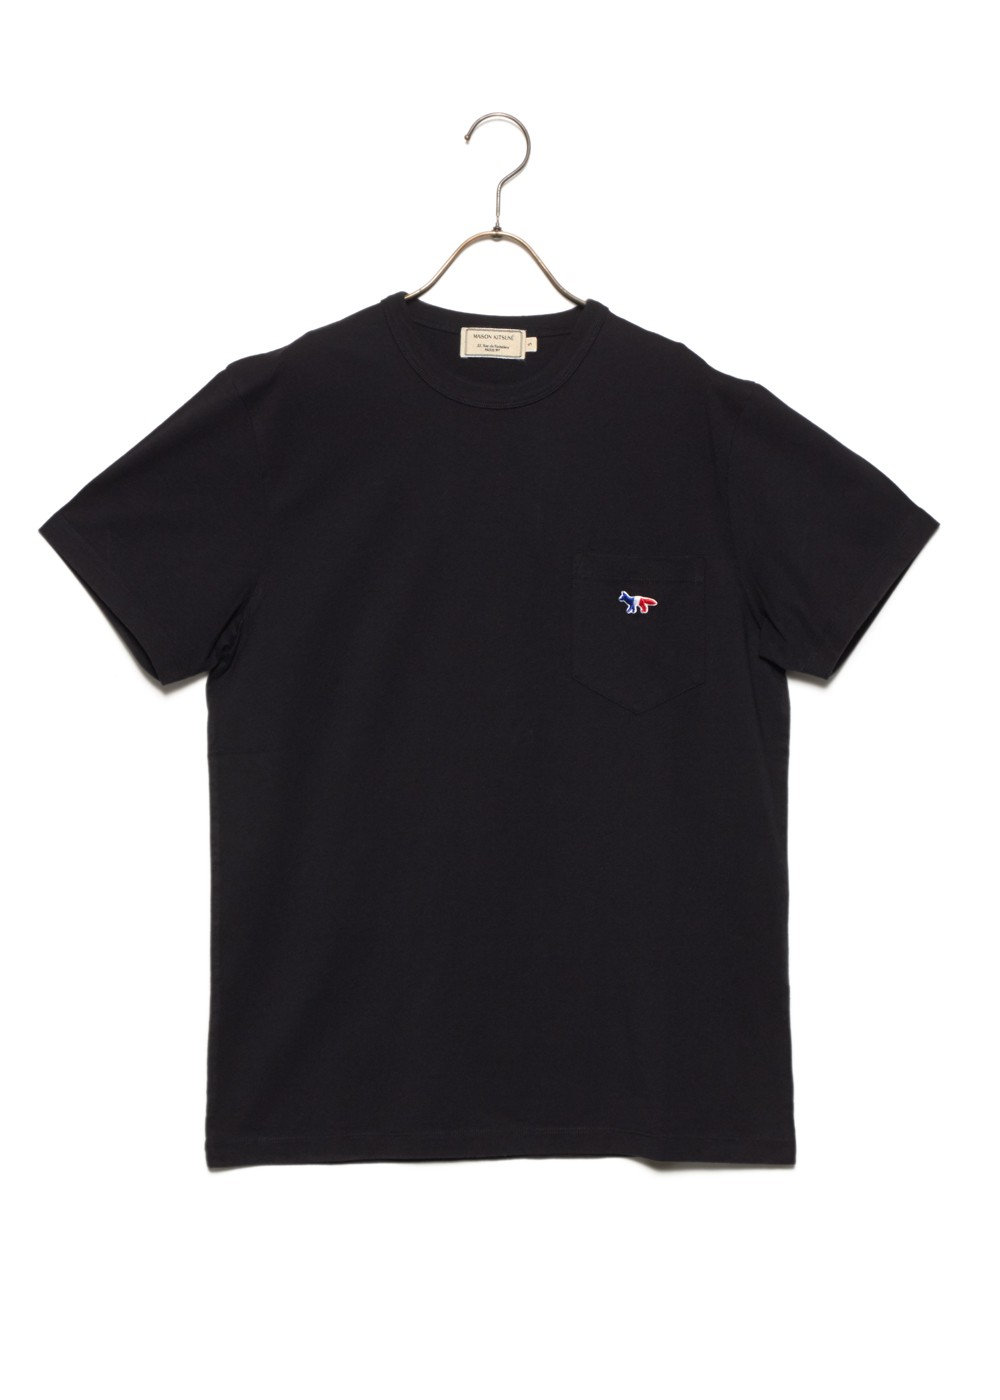 【最大51%OFF】TEE-SHIRT TRICOLOR FOX PATCH|BLACK|メンズトップス|MAISON KITSUNE